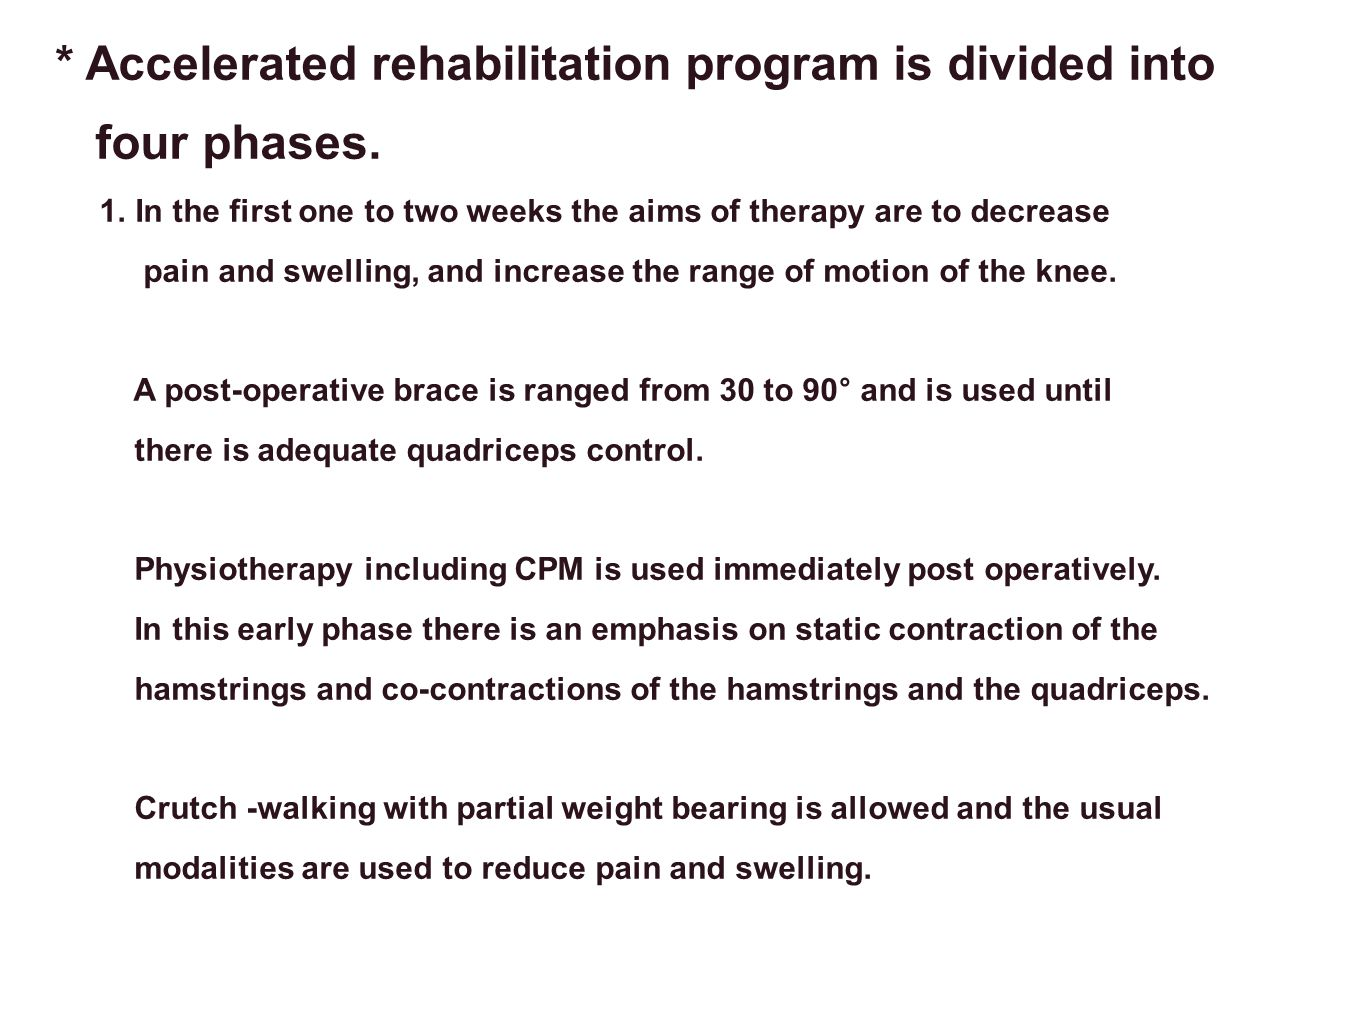 * Accelerated rehabilitation program is divided into four phases.